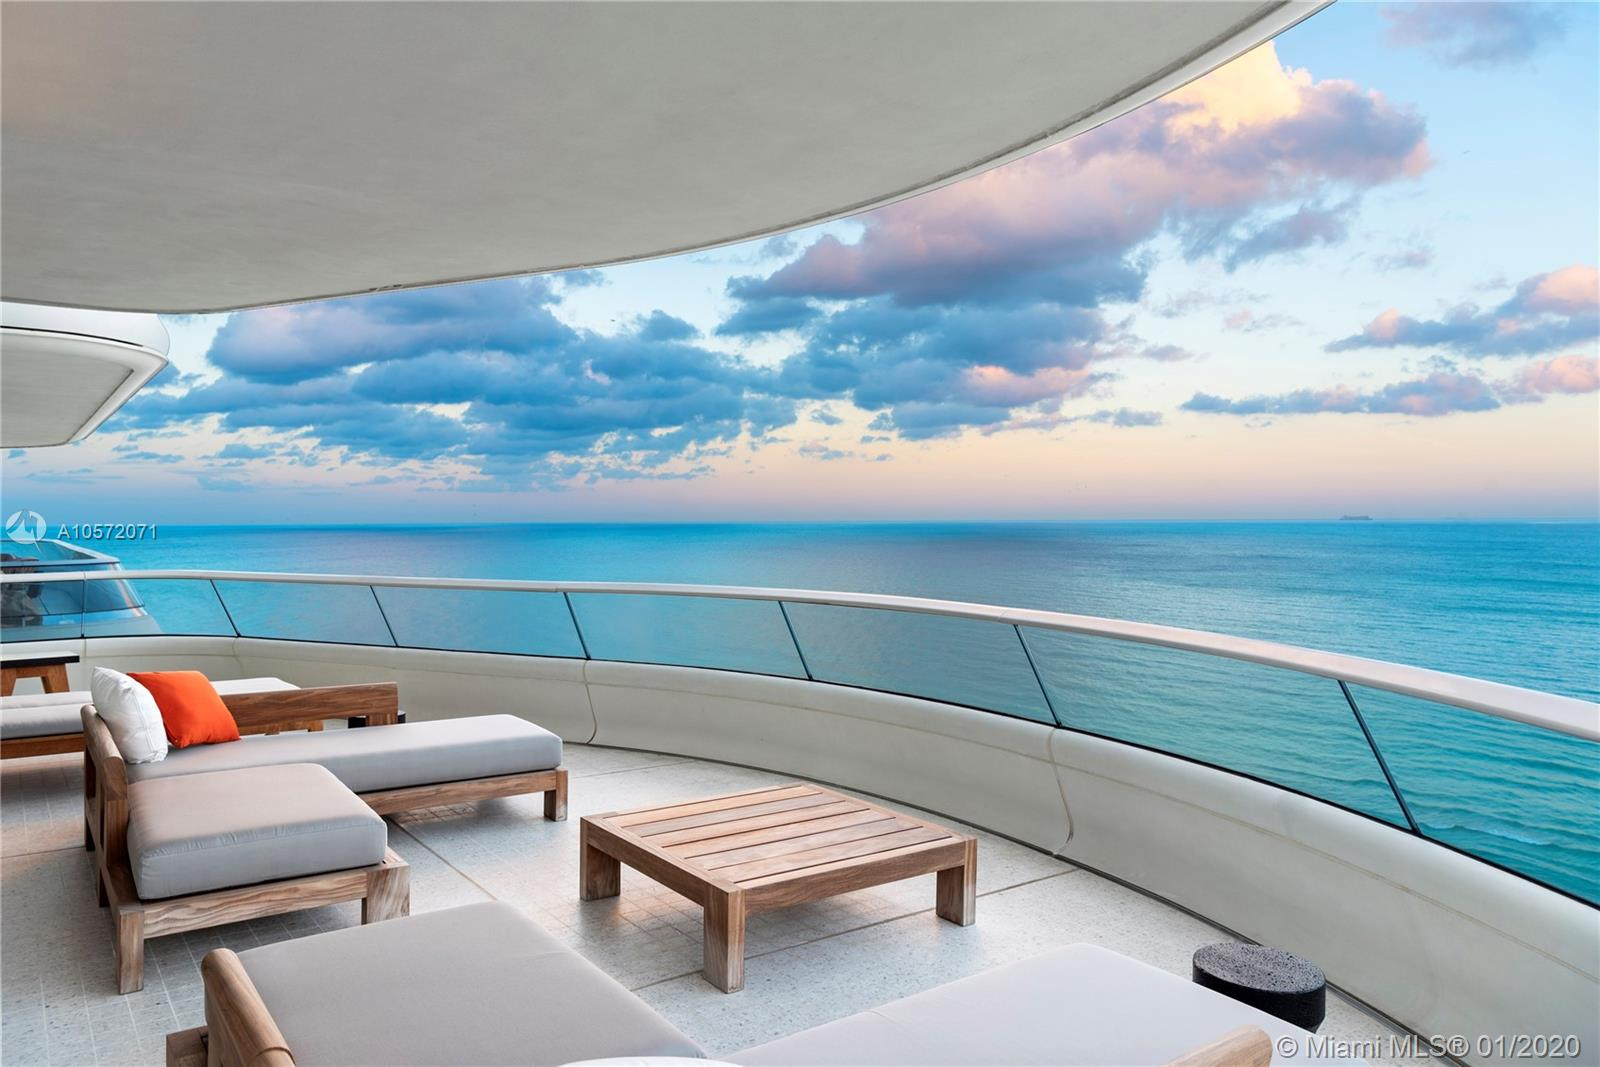 Envisioned By Alan Faena And Designed By Internationally Renowned Architects Foster+Partners, Faena House Is A Vision Of True Indoor/Outdoor Living+Ógé¼Gç¥Ingeniously Designed And Engineered, And Meticulously Constructed To Exist In Perfect Harmony With Its Oceanfront Setting. Designed By Christian Liaigre, This Magnificent 4 Bedroom + Office And 5.5 Bathroom Residence, With A Total Space Of 5, 466 Square Feet, Offers Custom Venetian Plaster Walls, A Media Room With A Custom Built Wet-Bar, Kitchens By Molteni With Miele Appliances, Venetian Terrazzo Flooring Throughout, Bathrooms By Permasteelisa, And An Upgraded Crestron Home Automation System. Next Door To The 5 Star, #1 Rated Hotel In Miami, The Faena, Which Provides Hotel Services And Amenities To Your Door.